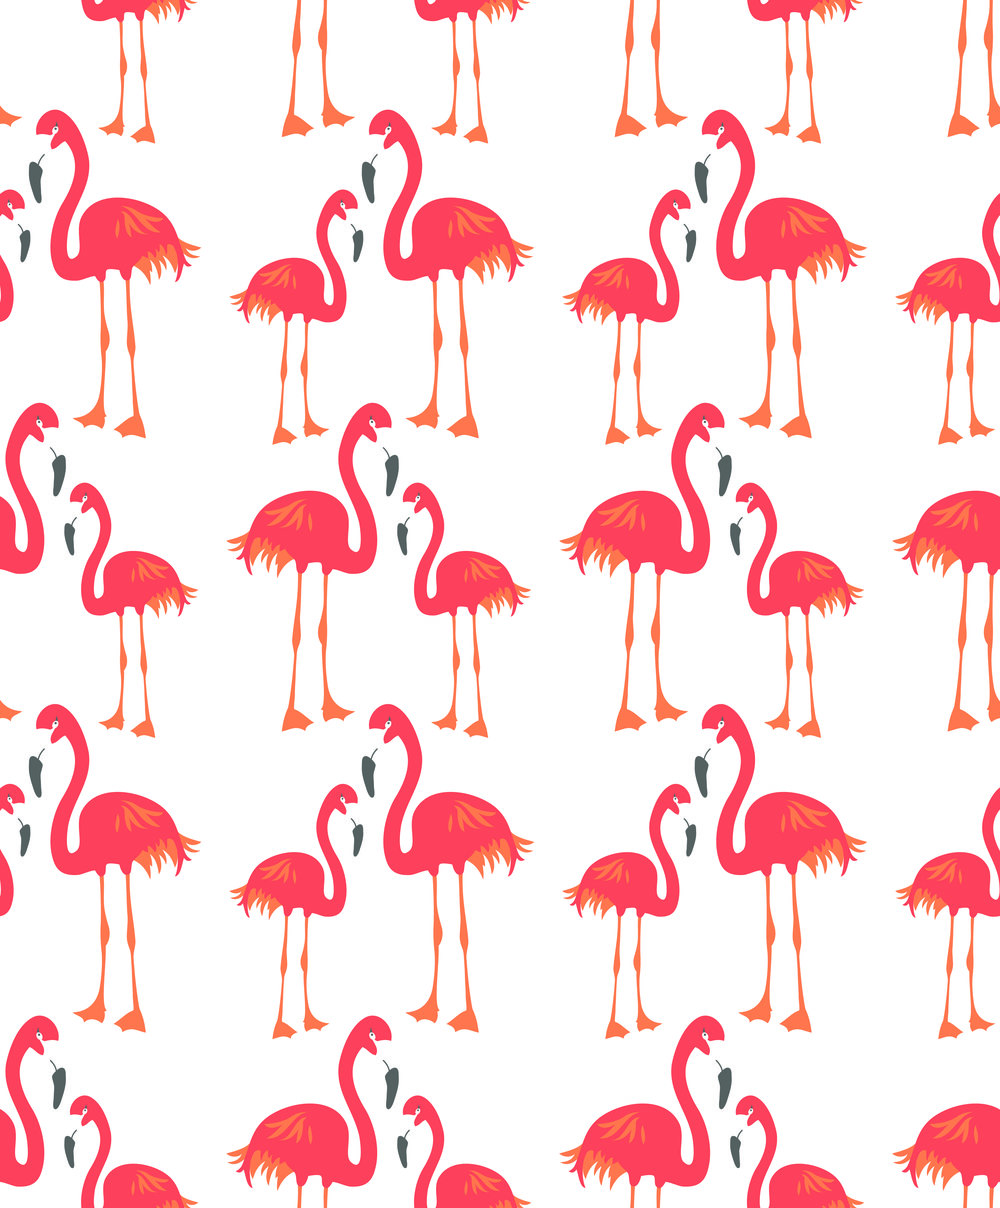 flamingo white-01.jpg